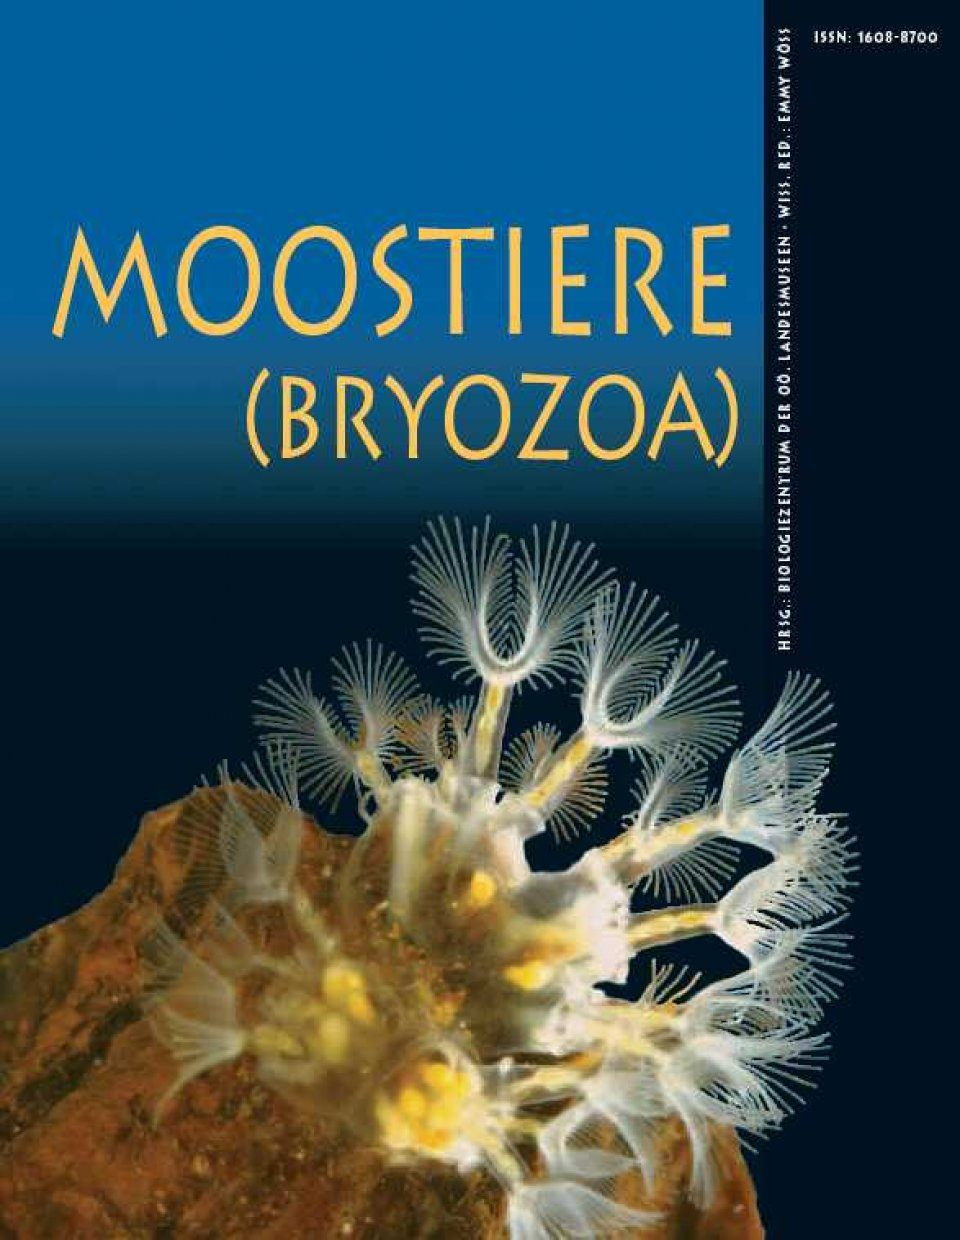 Moostiere (Bryozoa) / Moss Animals (Bryozoa) [English / French / German]